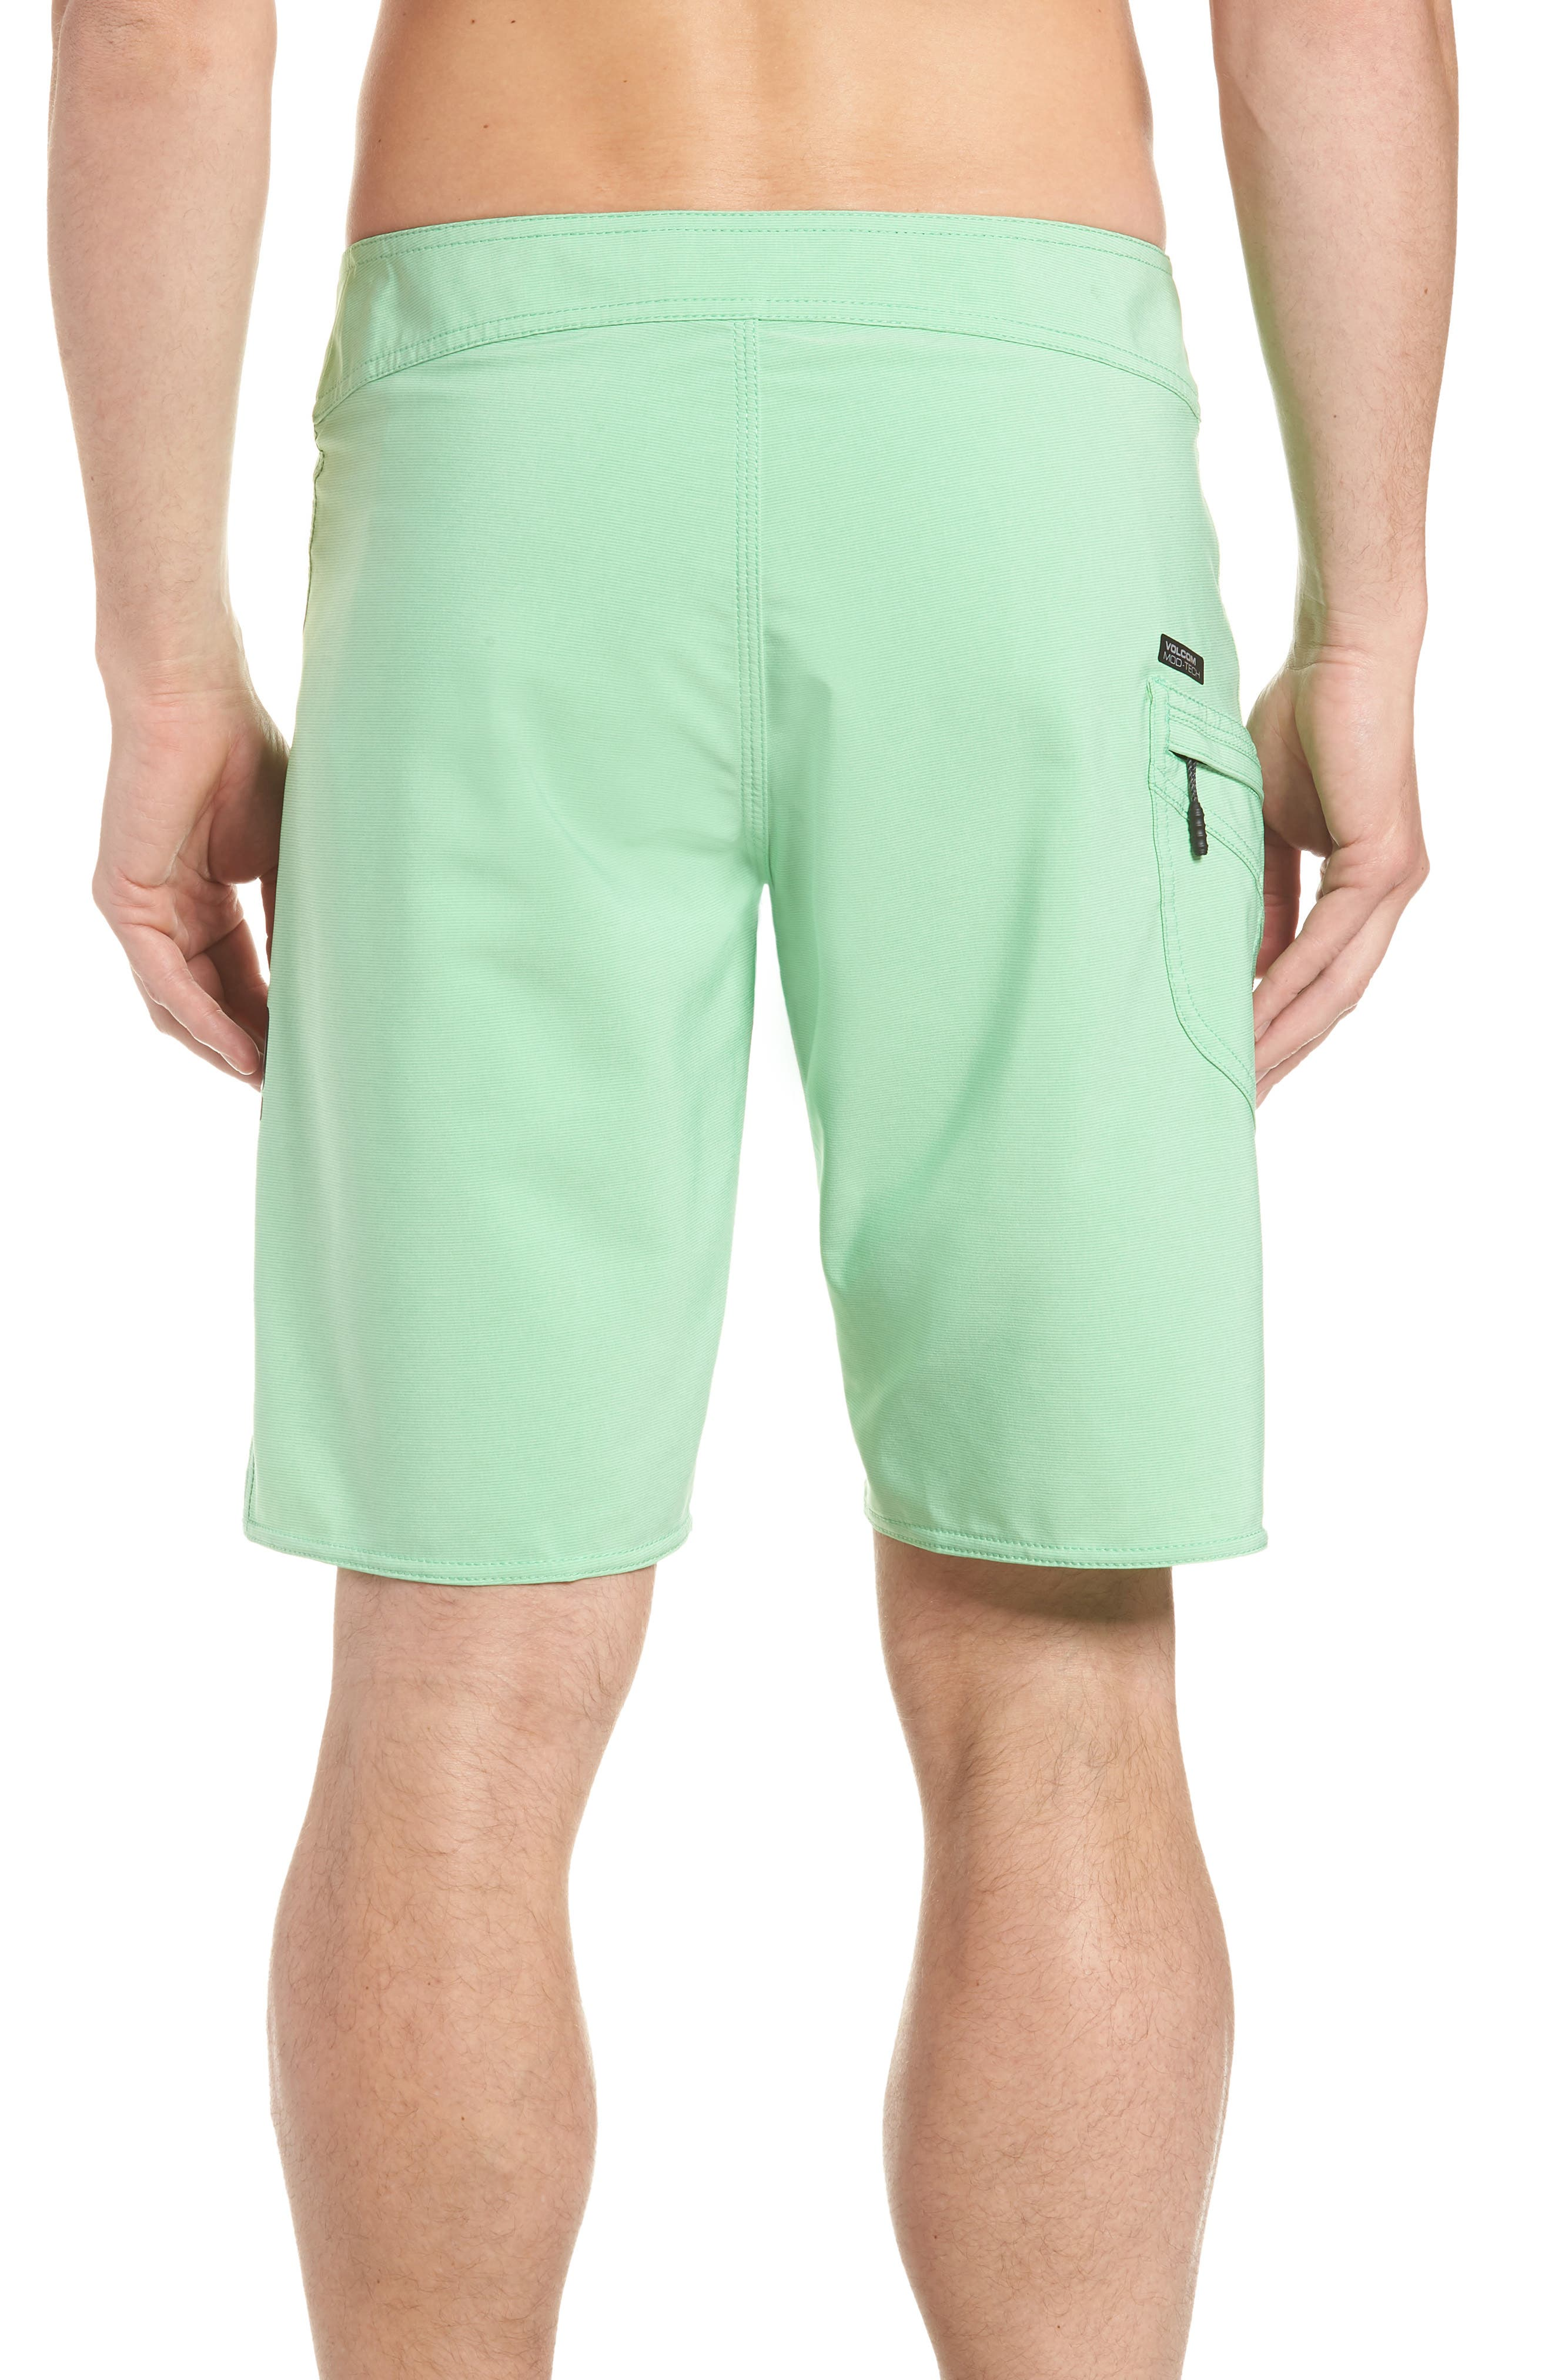 Lido Mod Board Shorts,                             Alternate thumbnail 2, color,                             Poison Green